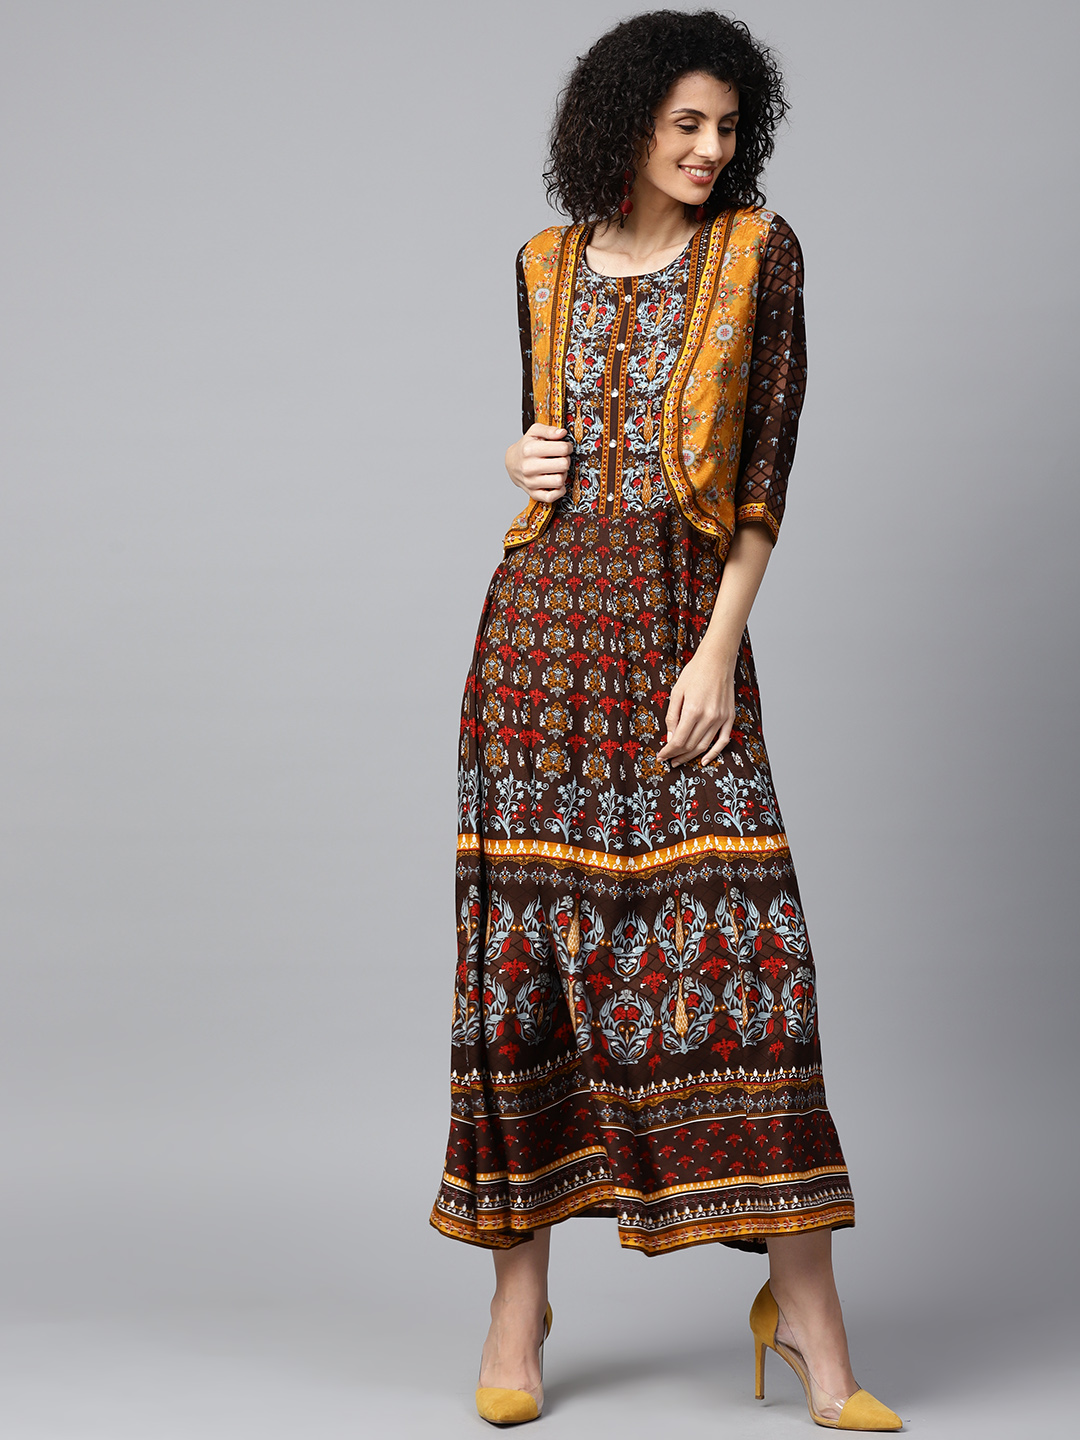 d7f79a1c3e97 Buy Shree Women Coffee Brown   Mustard Yellow Printed Maxi ...